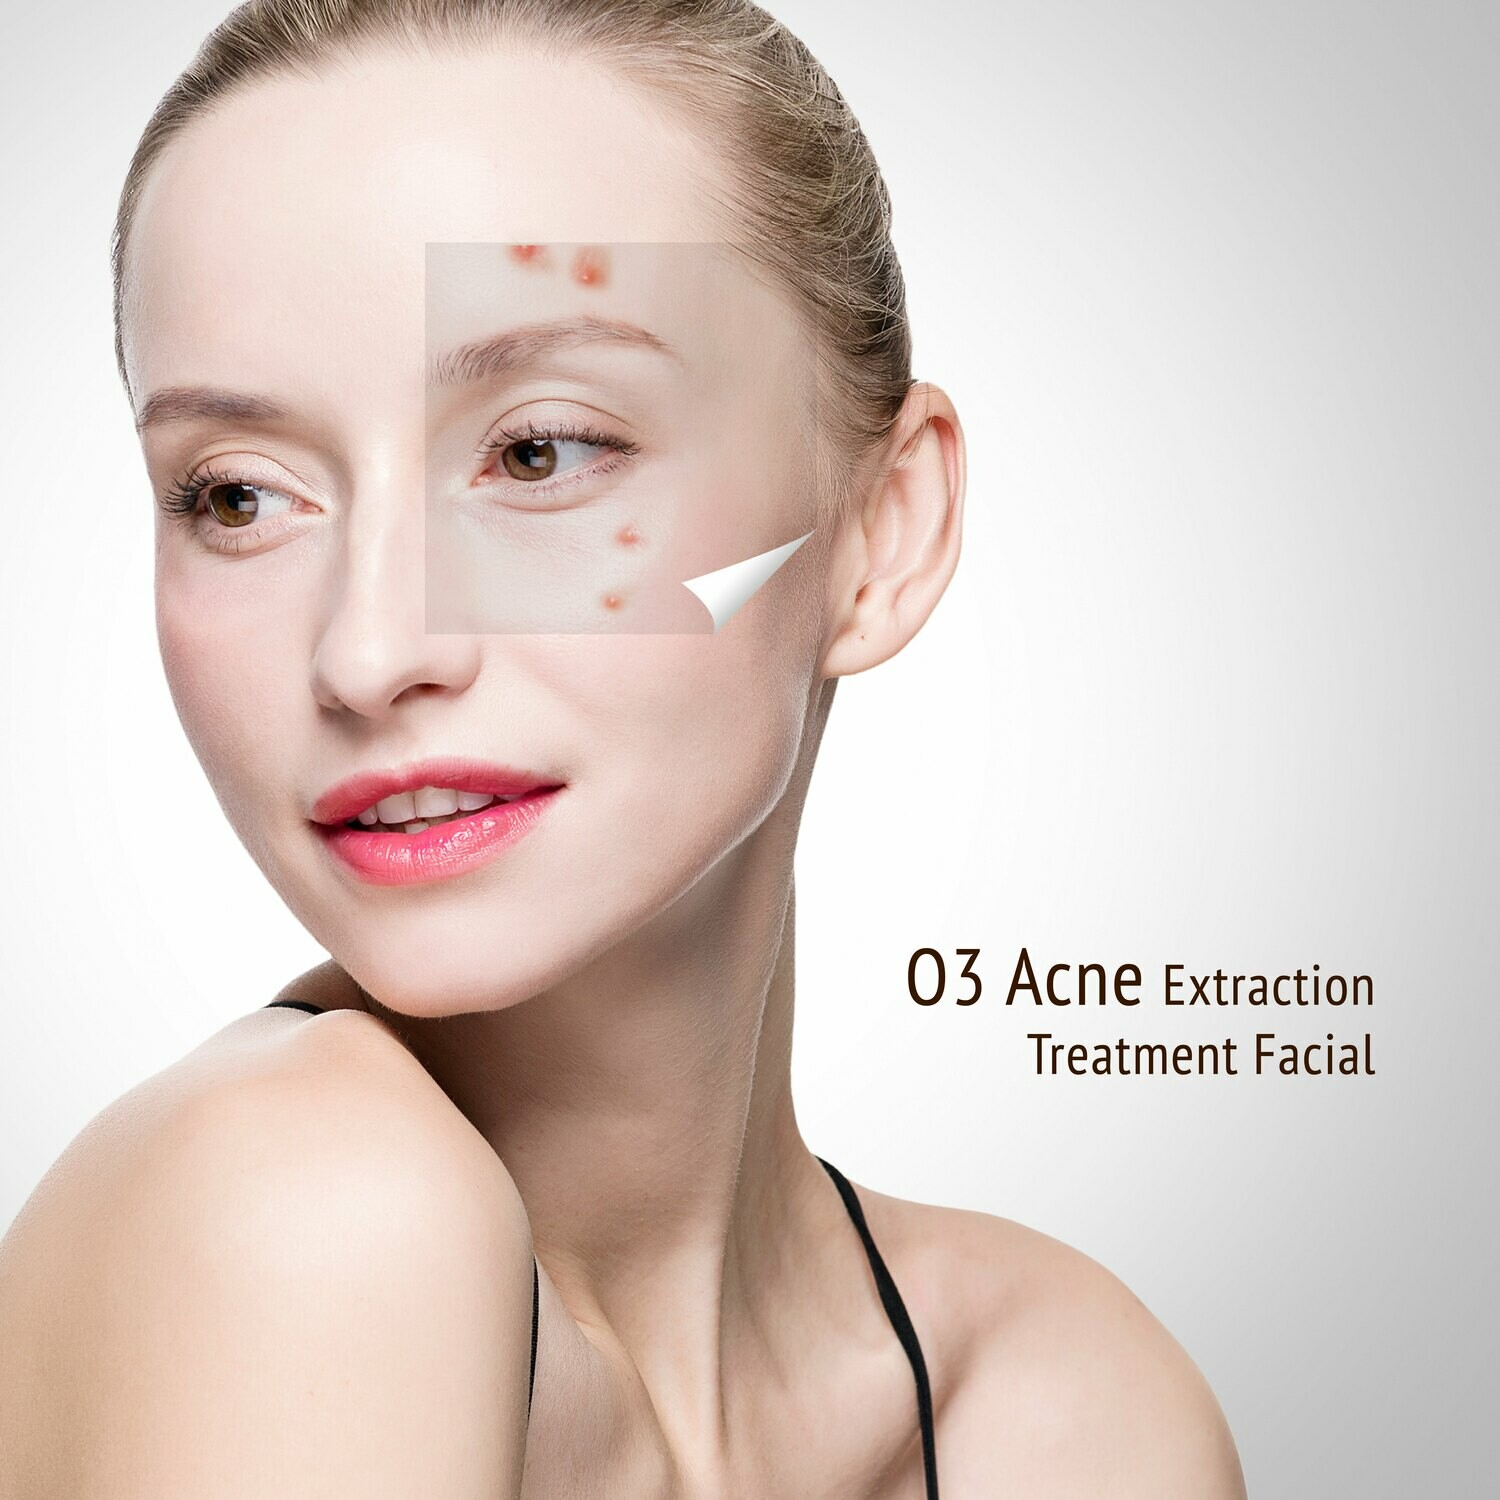 O3 Acne Extraction Treatment Facial Trial